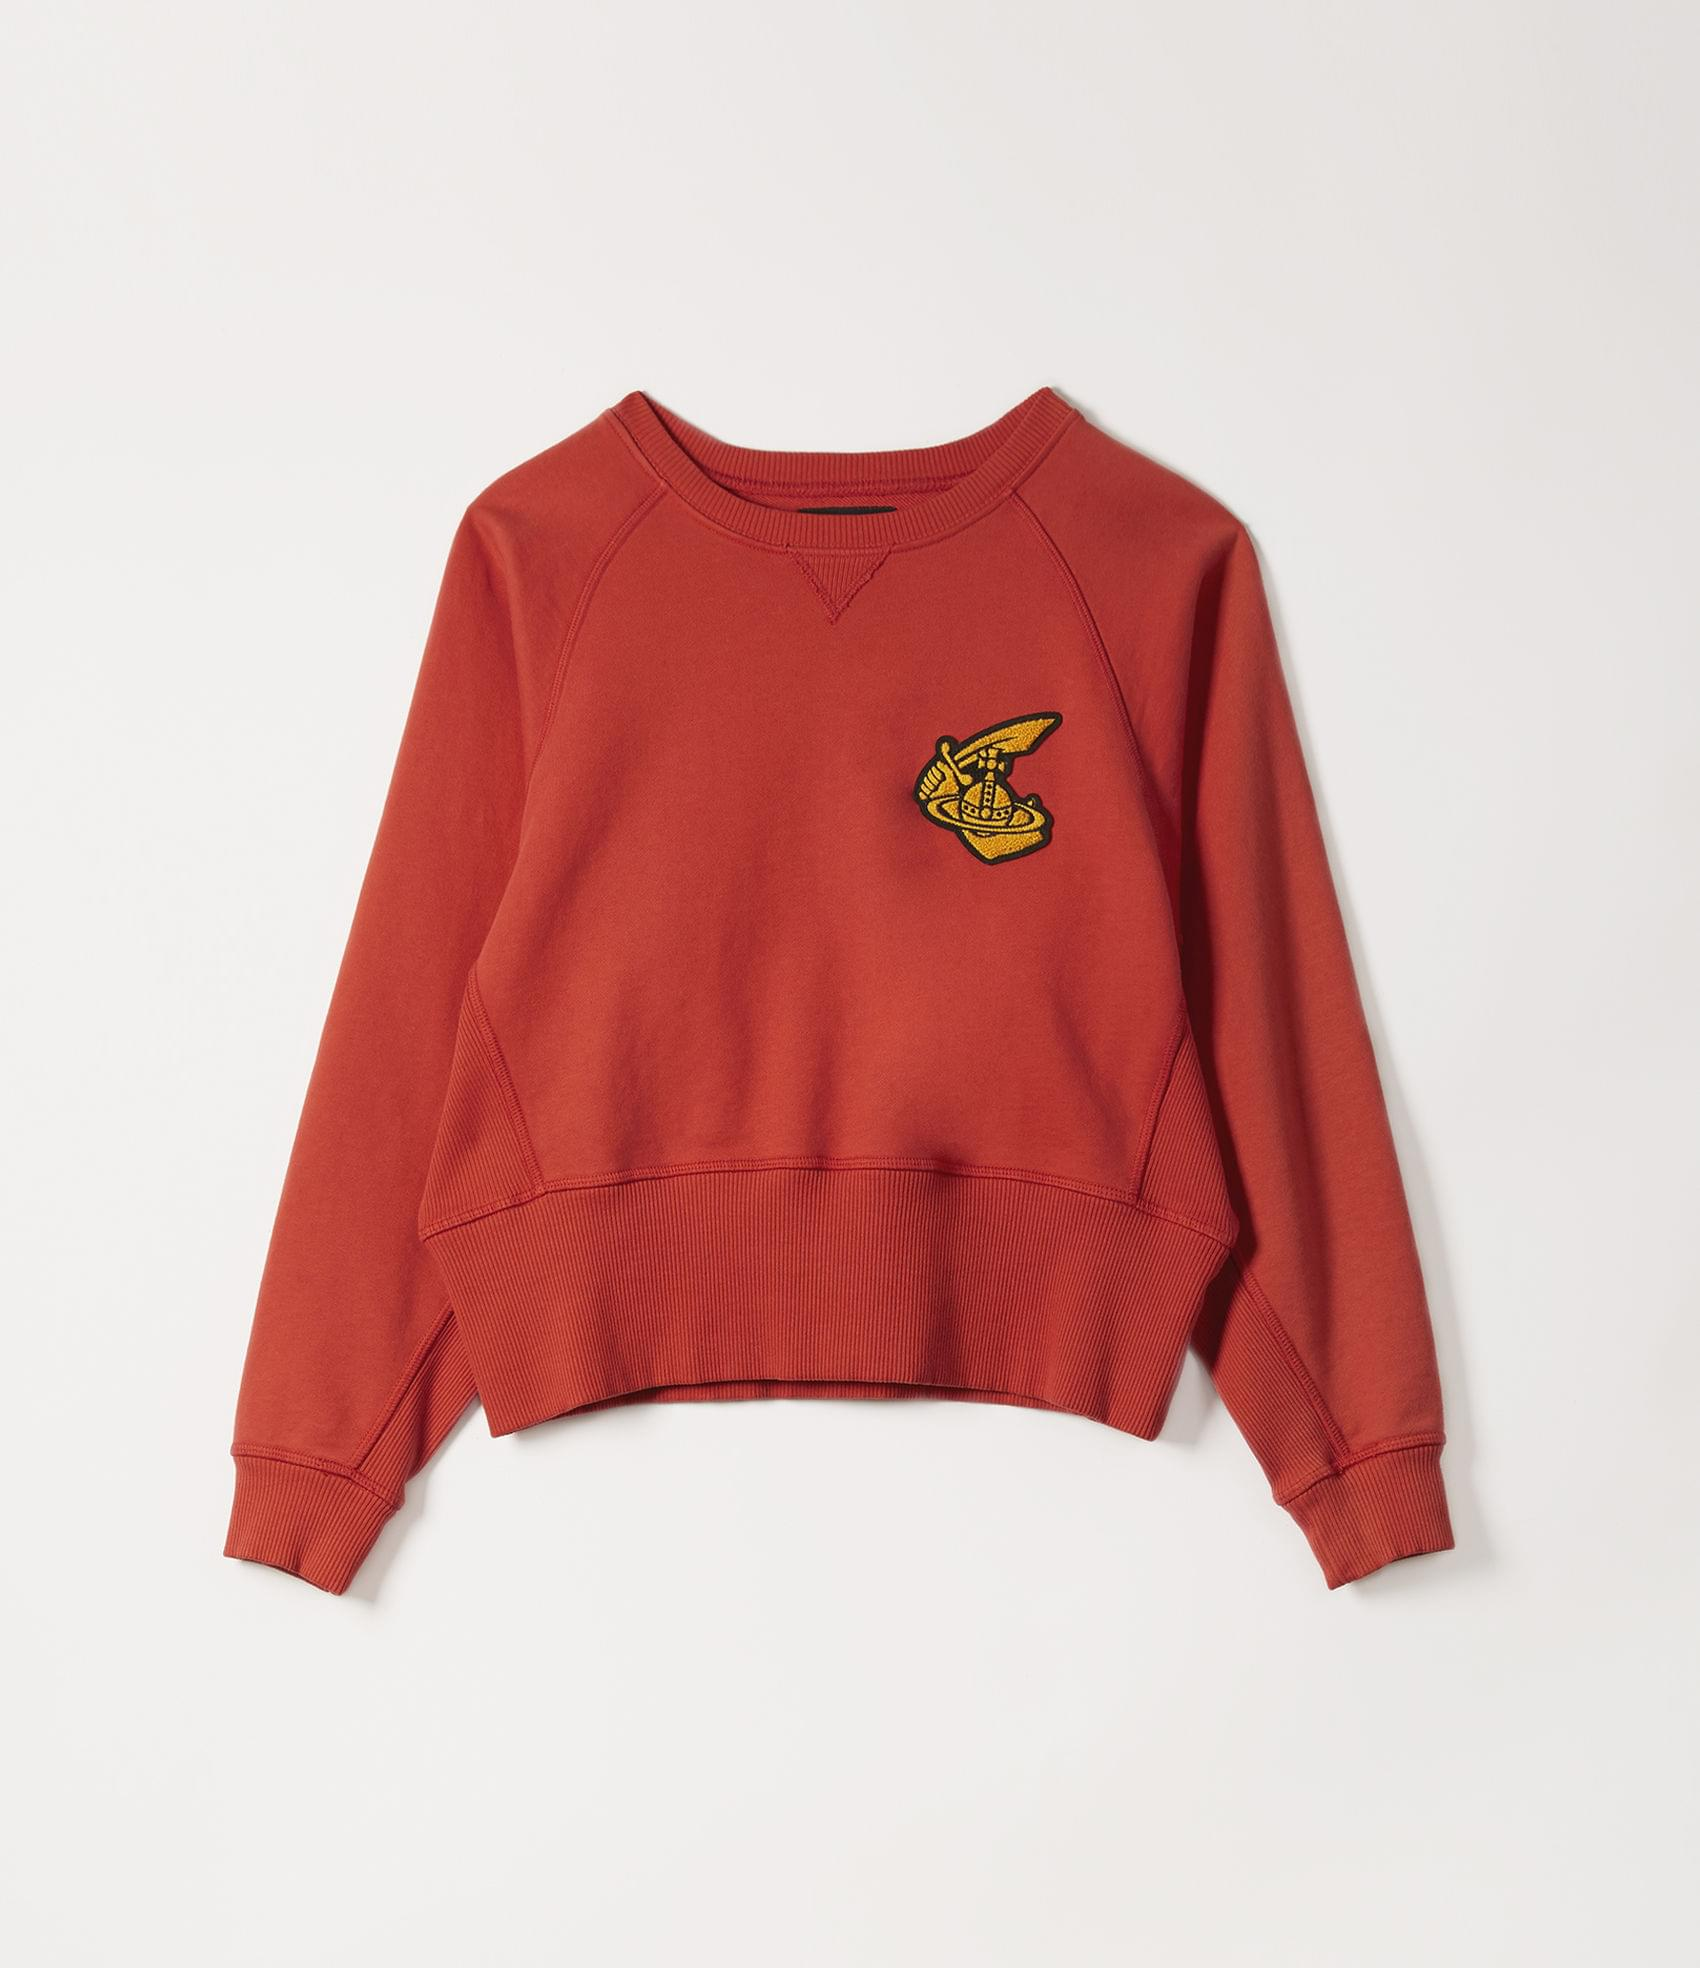 Vivienne Westwood ATHLETIC SWEATSHIRT RED